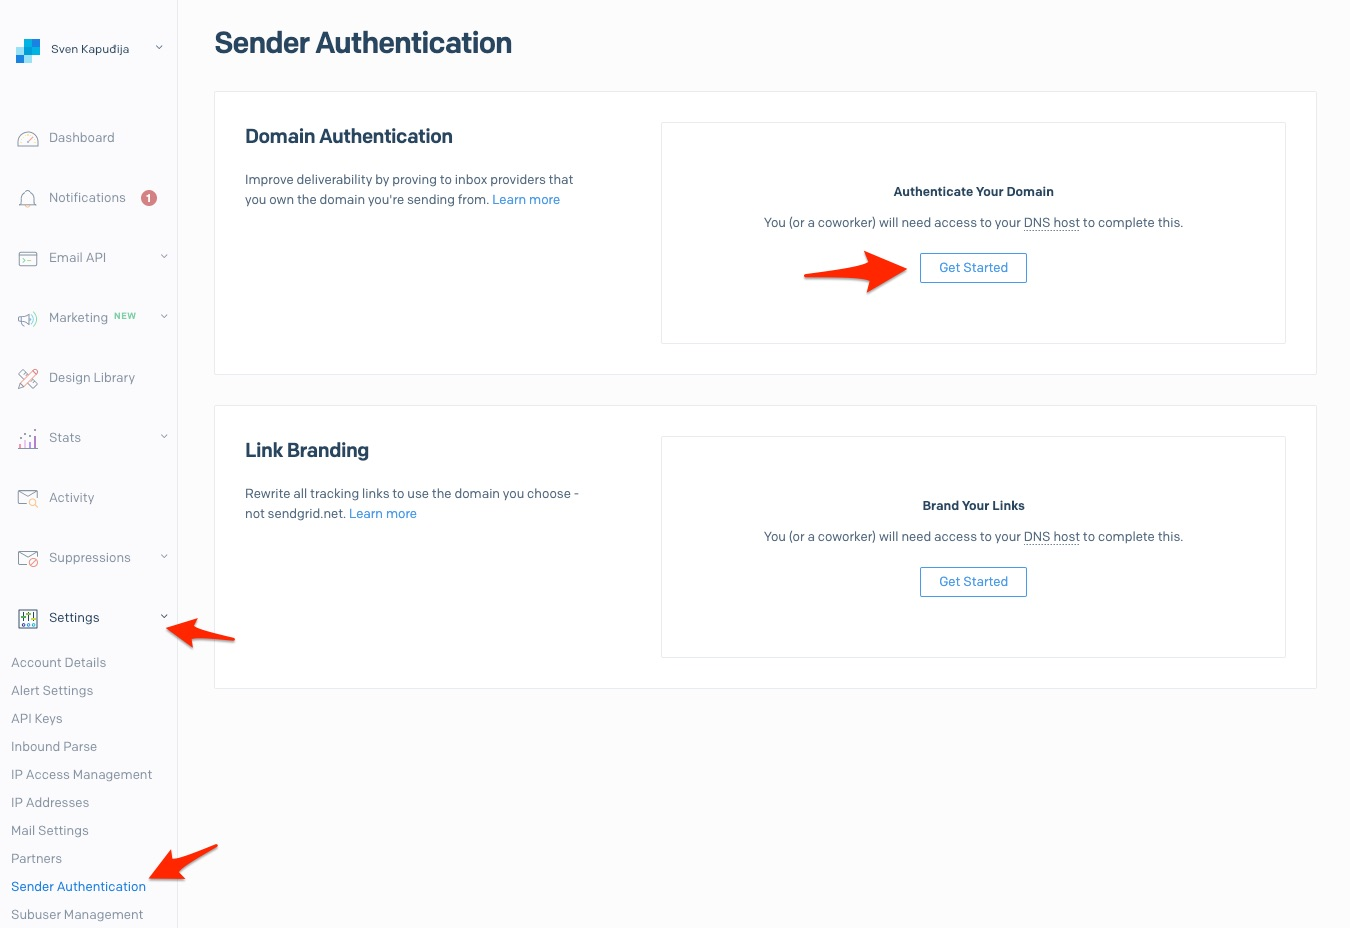 Getting Started with Sender Authentication